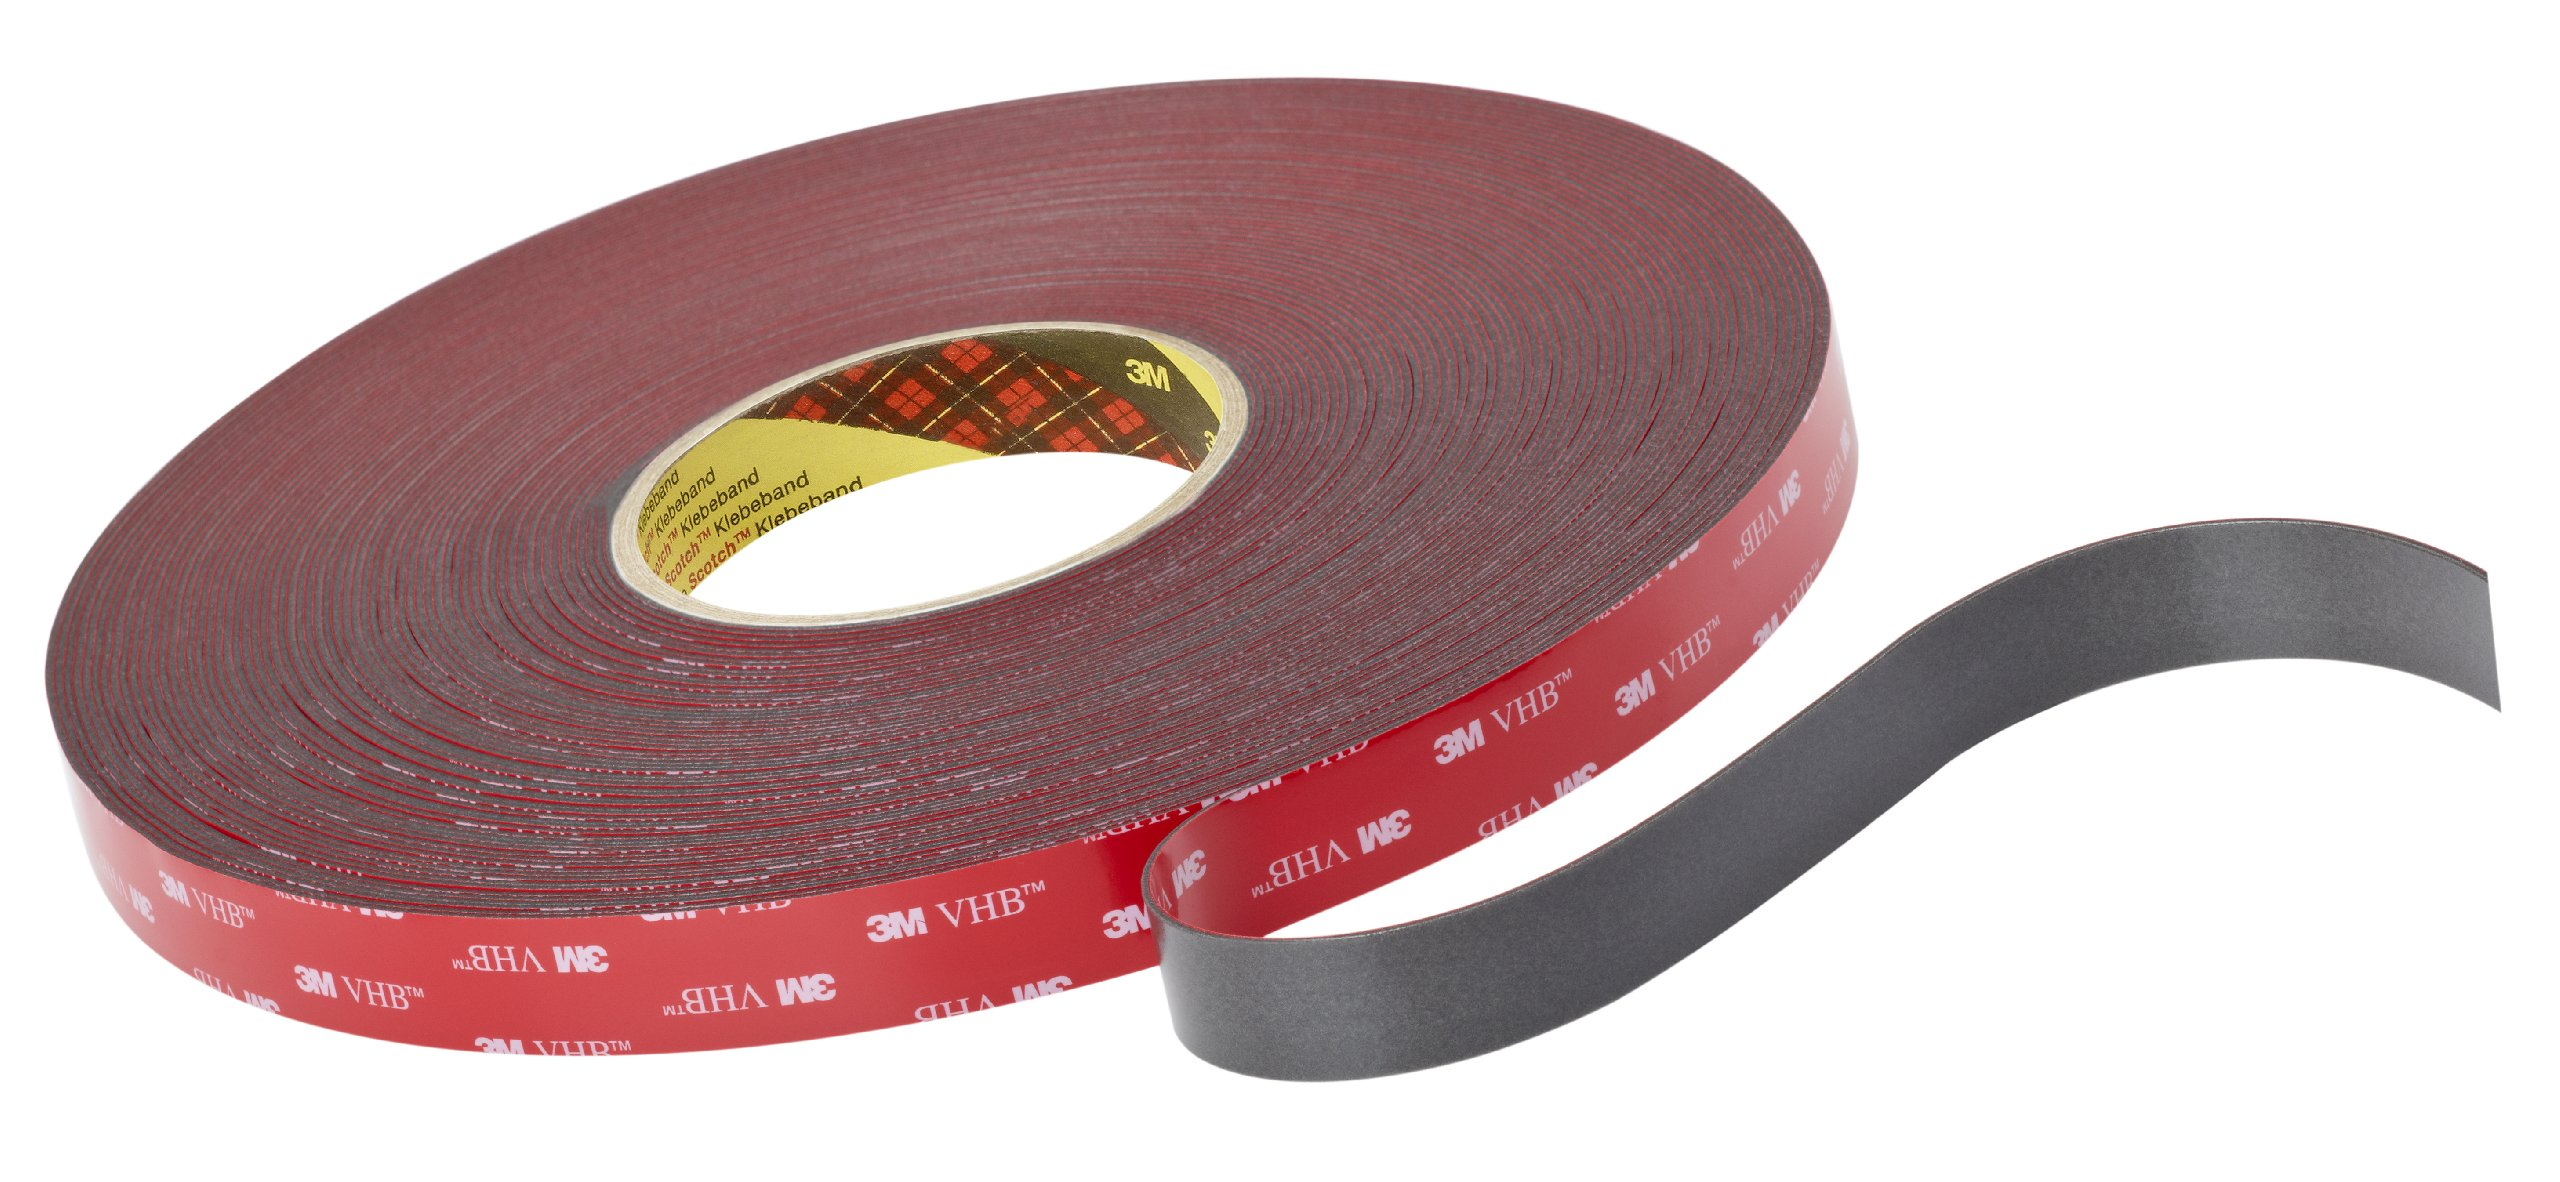 3M VHB Tape 4611 Gray, 1 in x 36 yd 45.0 mil (Case of 9)